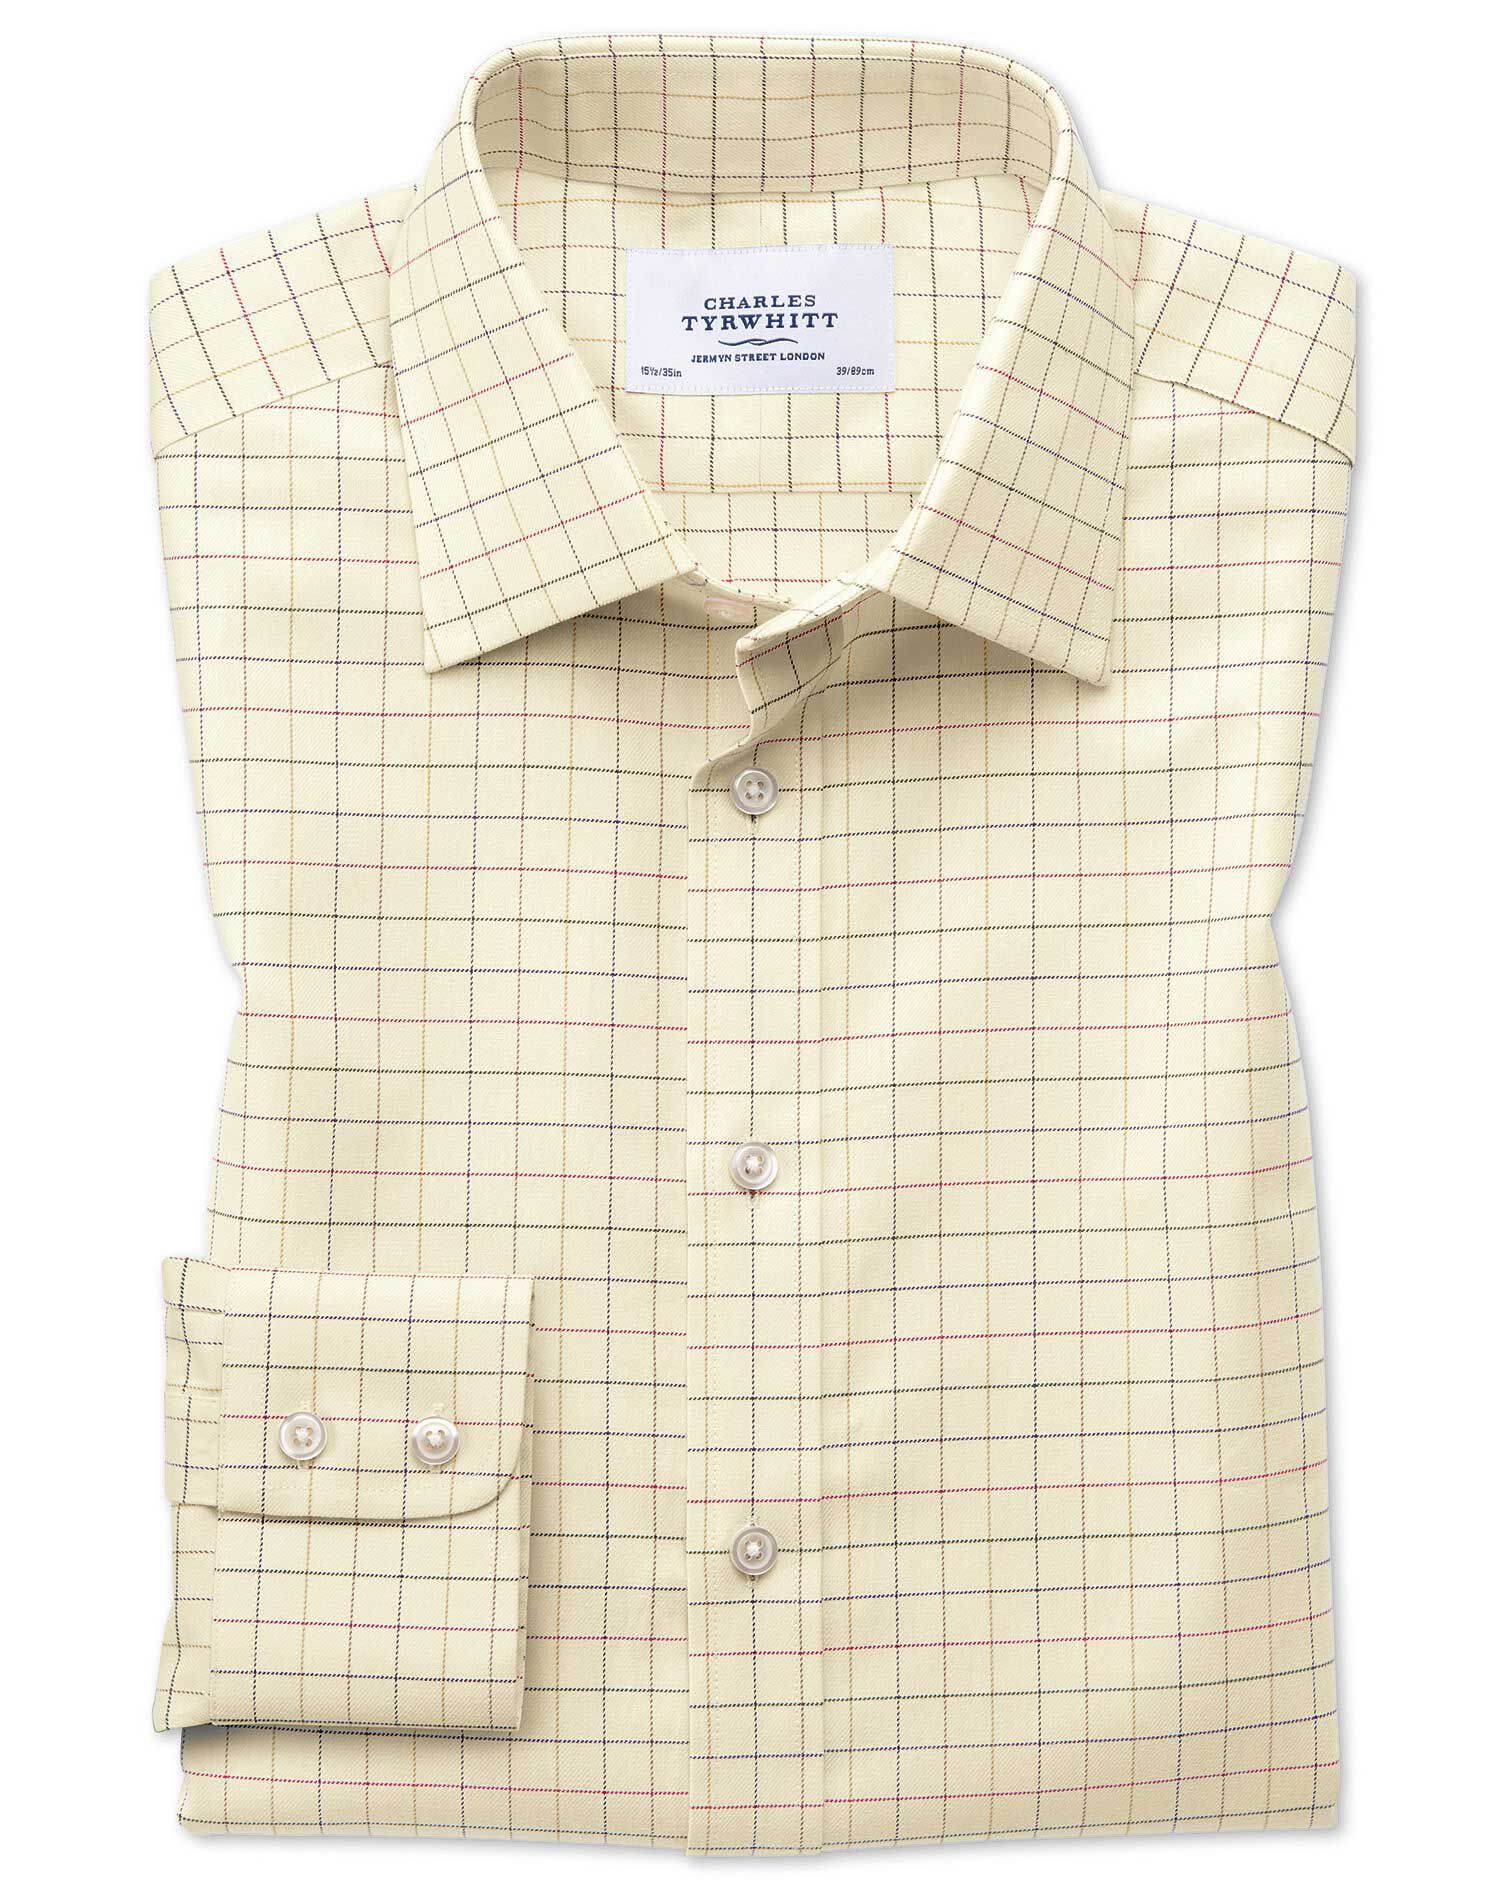 Extra Slim Fit Country Check Multi Cotton Formal Shirt Single Cuff Size 16/33 by Charles Tyrwhitt